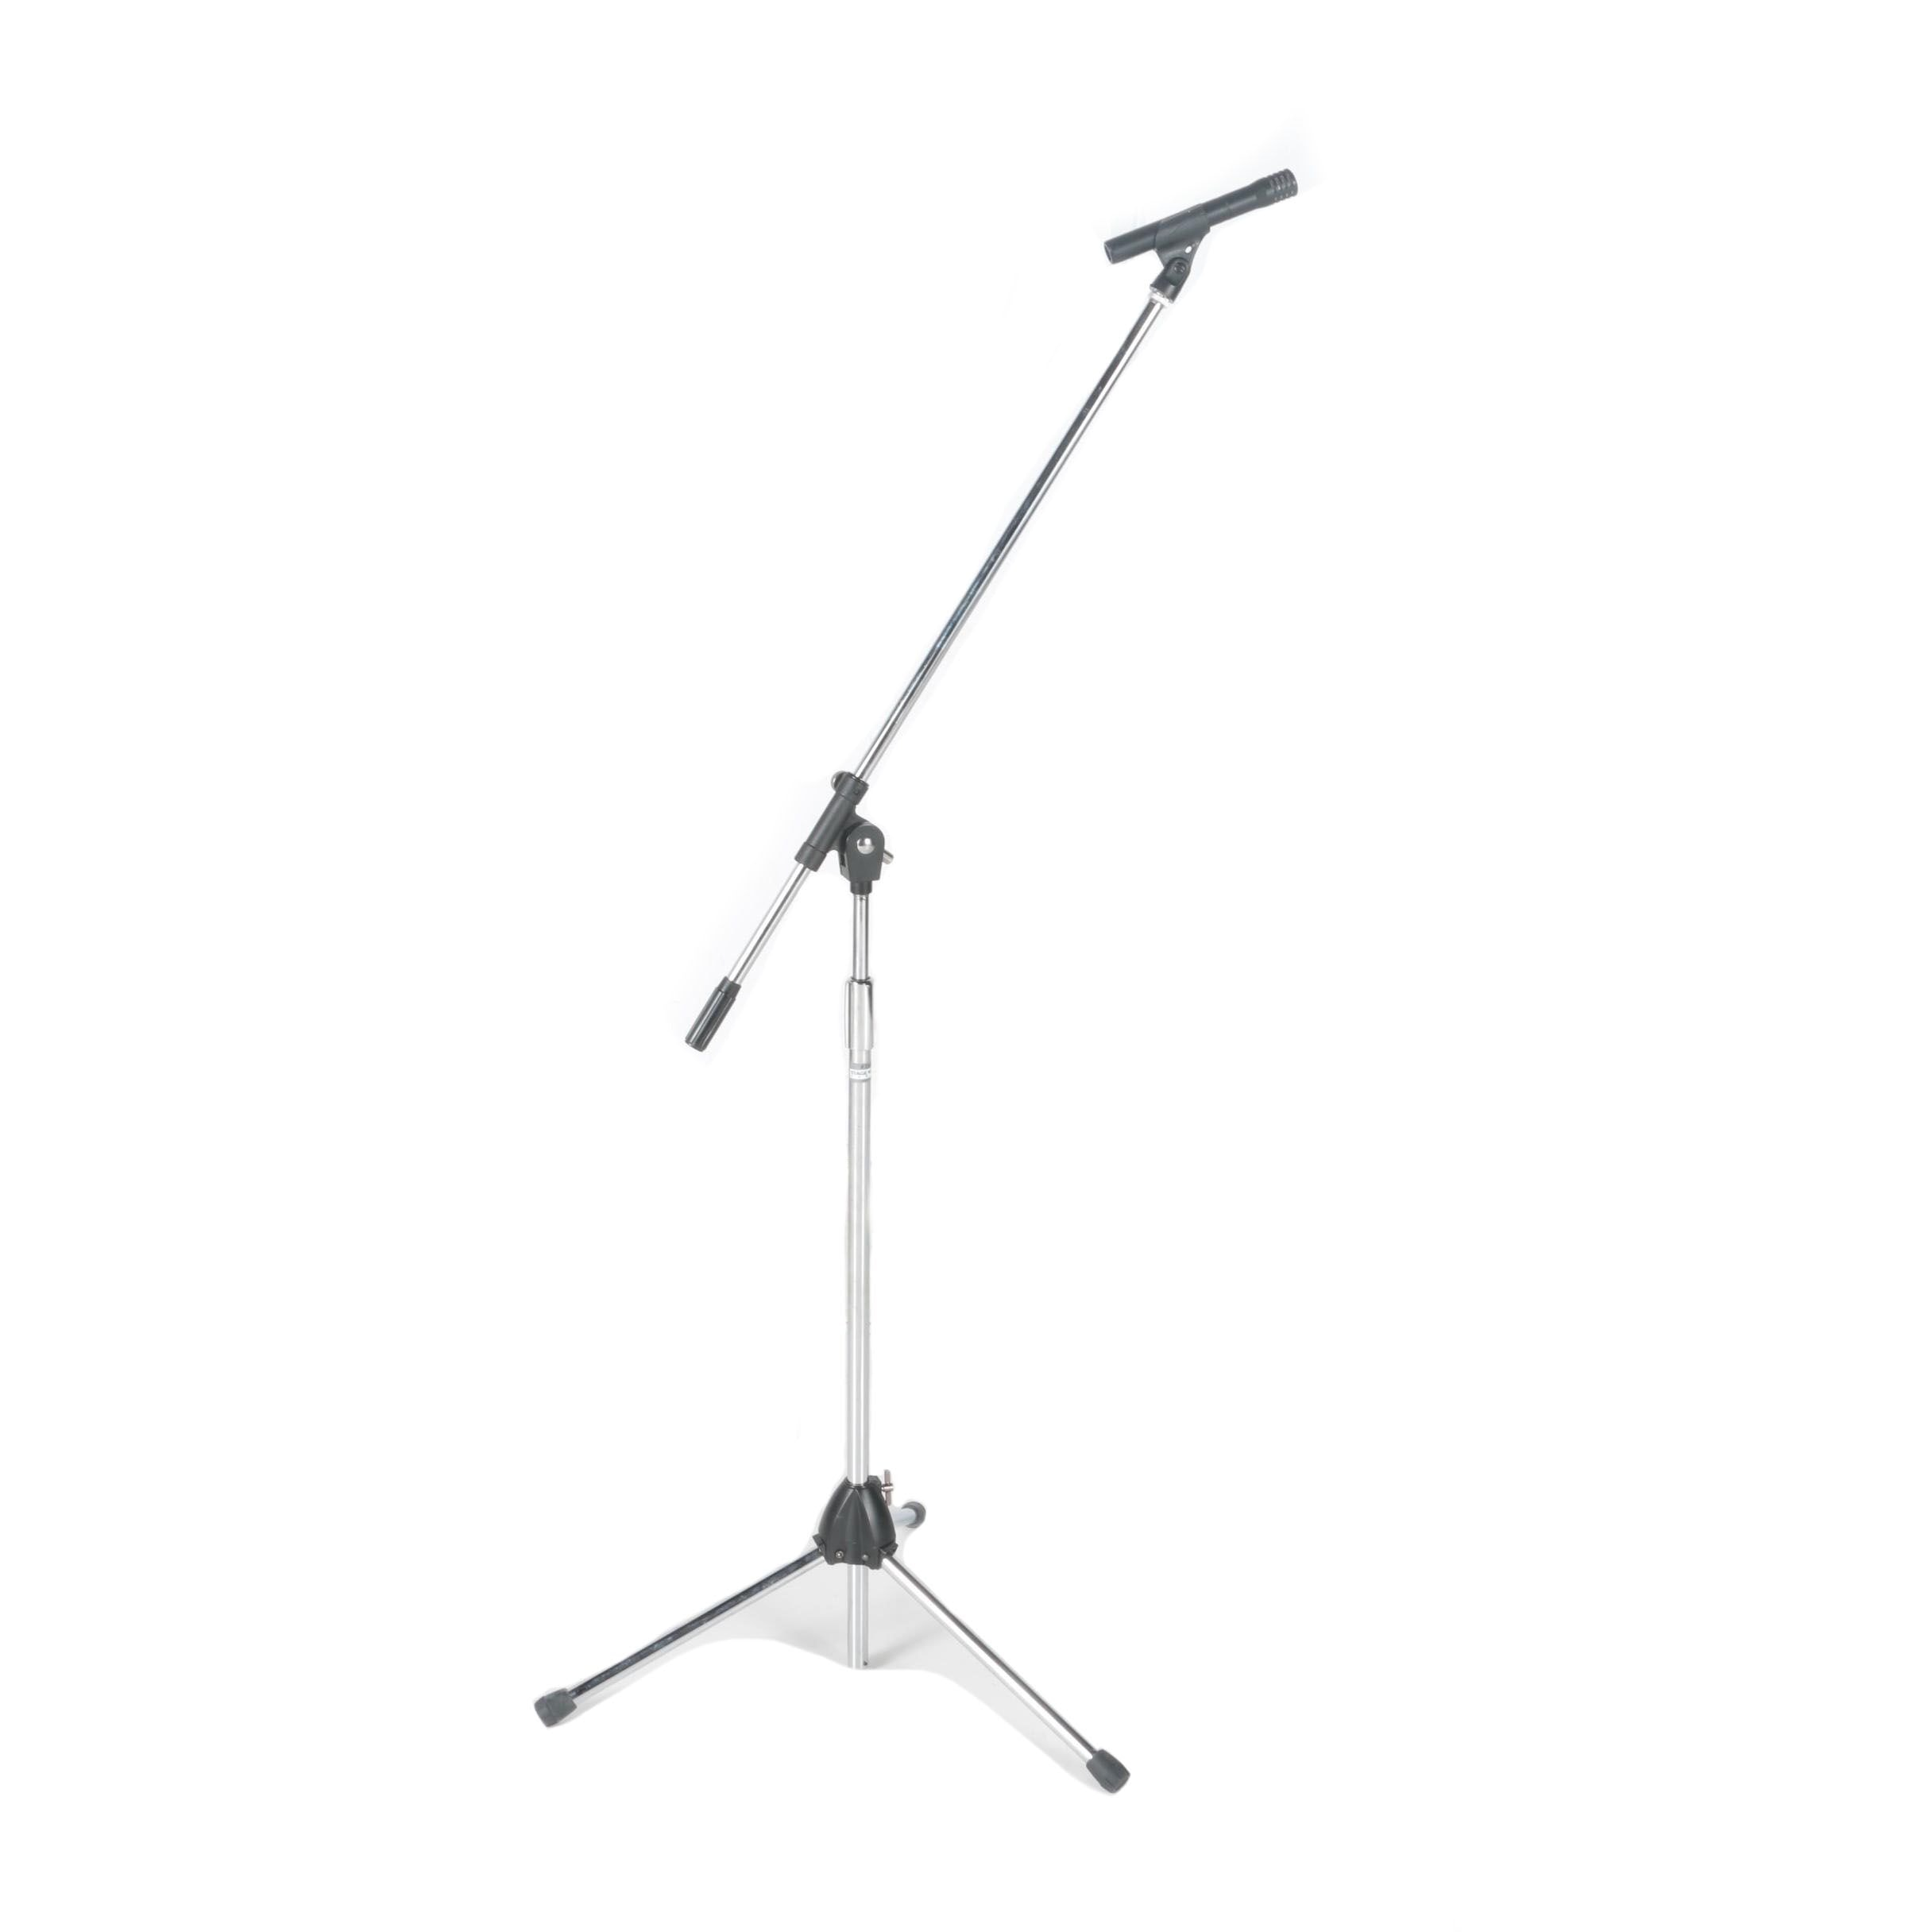 Shure PG81 Microphone with Stand